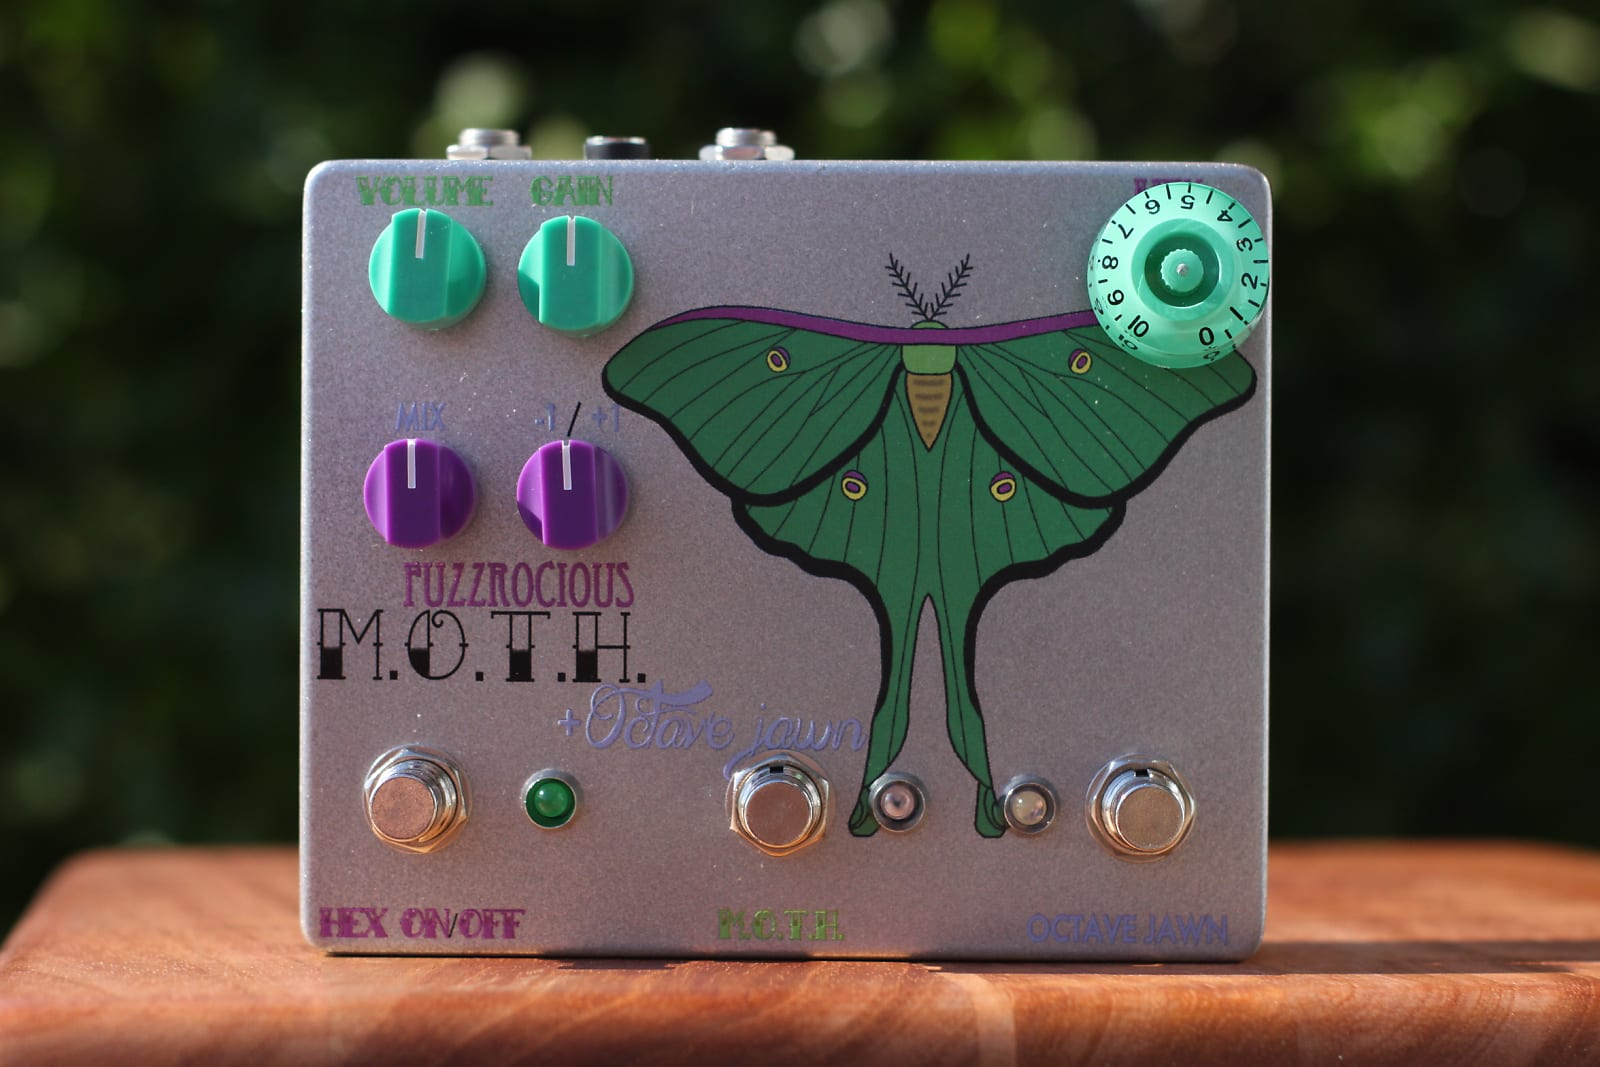 Fuzzrocious - M.O.T.H + Octave Jawn - Tulsa Band & Guitars Exclusive